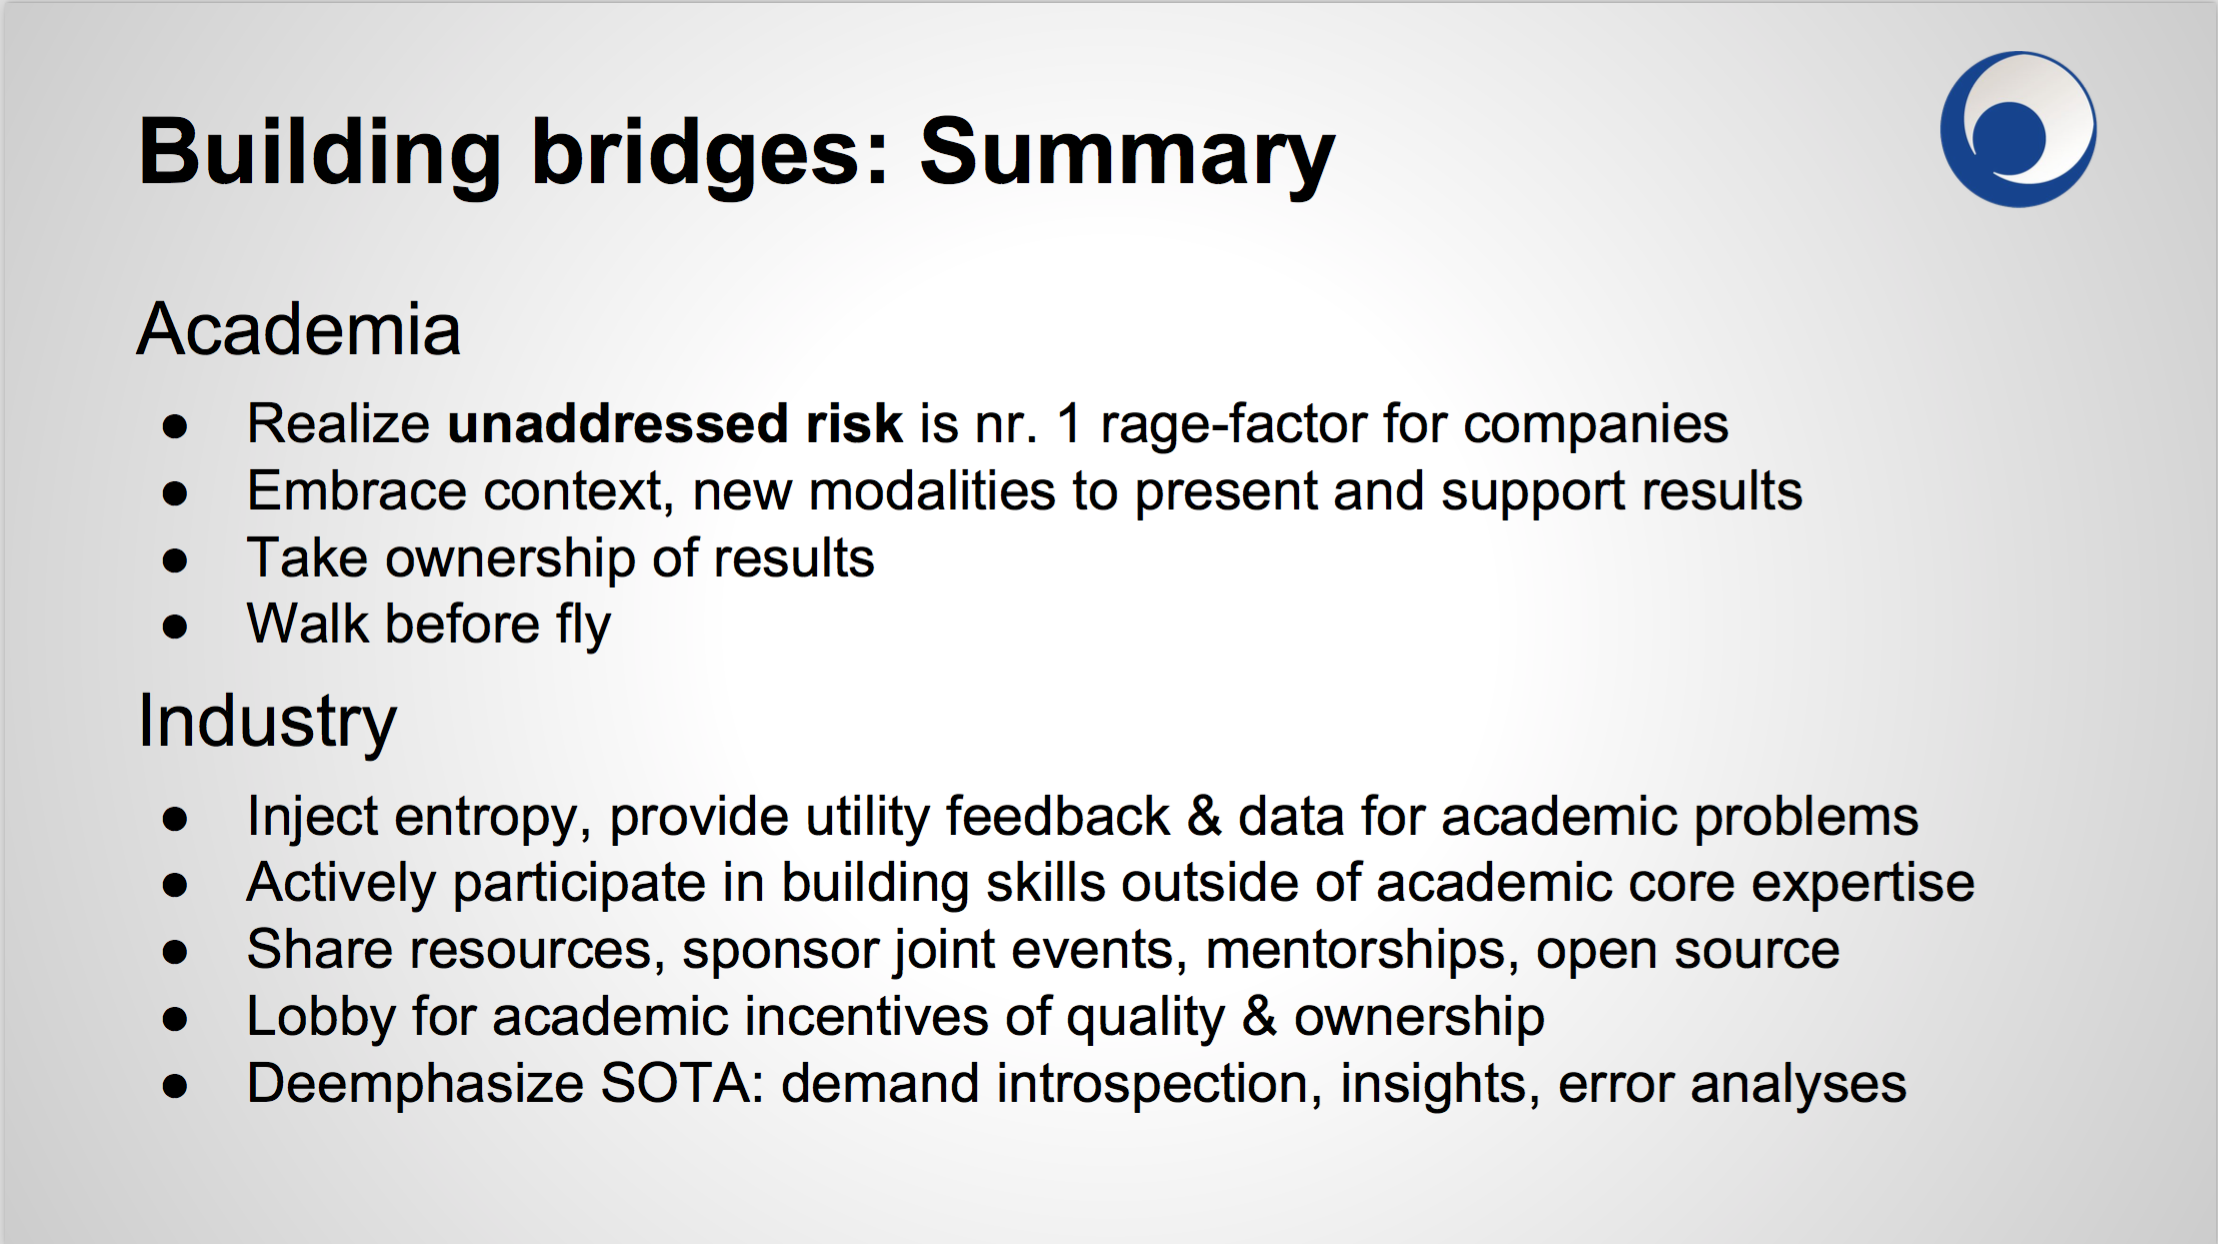 building bridges: summary